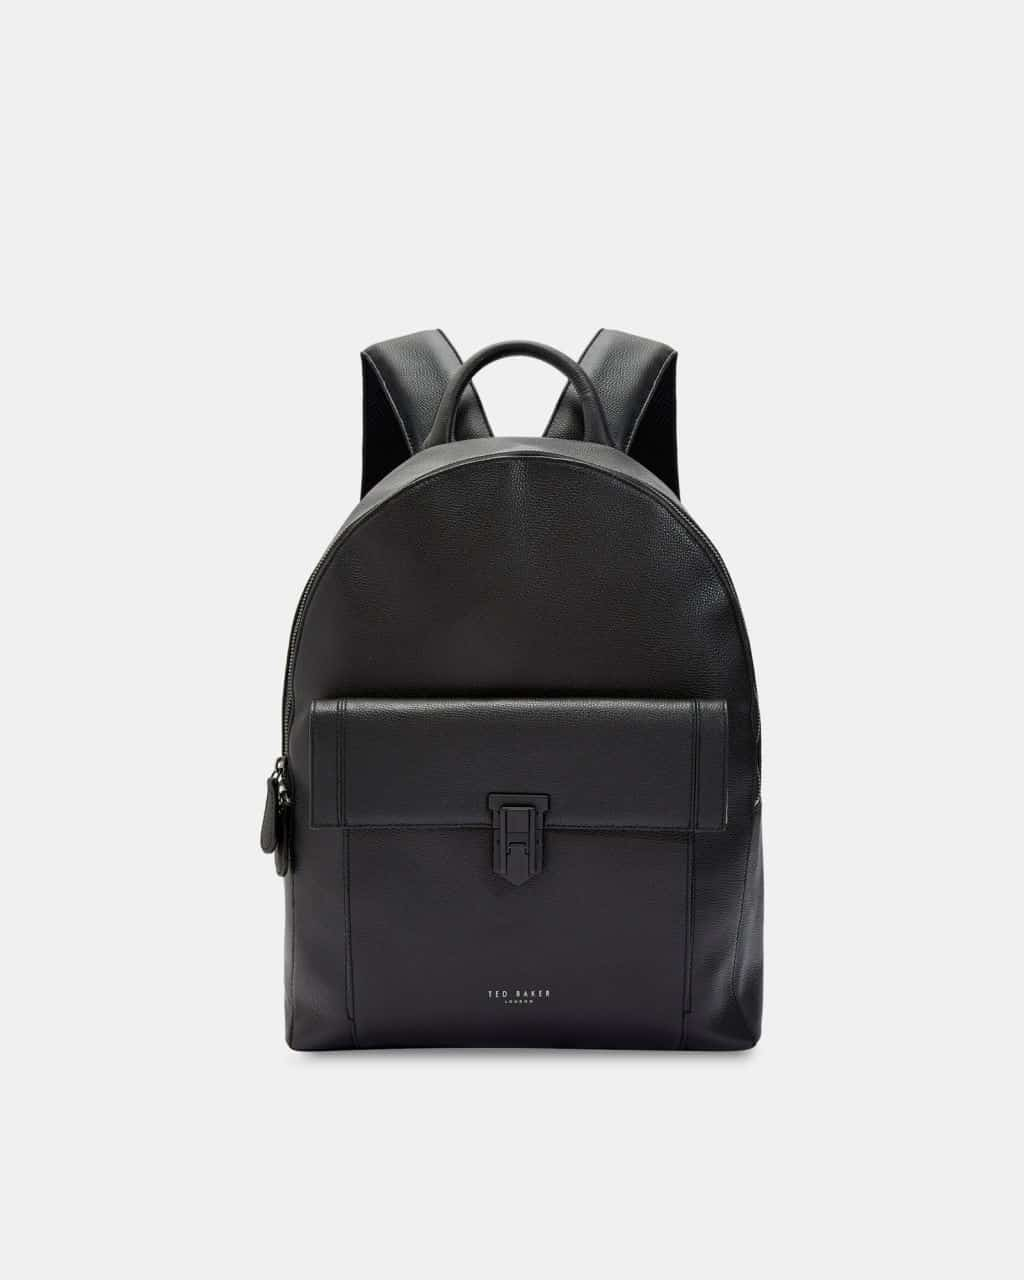 7f6f6491a TED BAKER LONDON BLACK EASTMO LEATHER BACKPACK